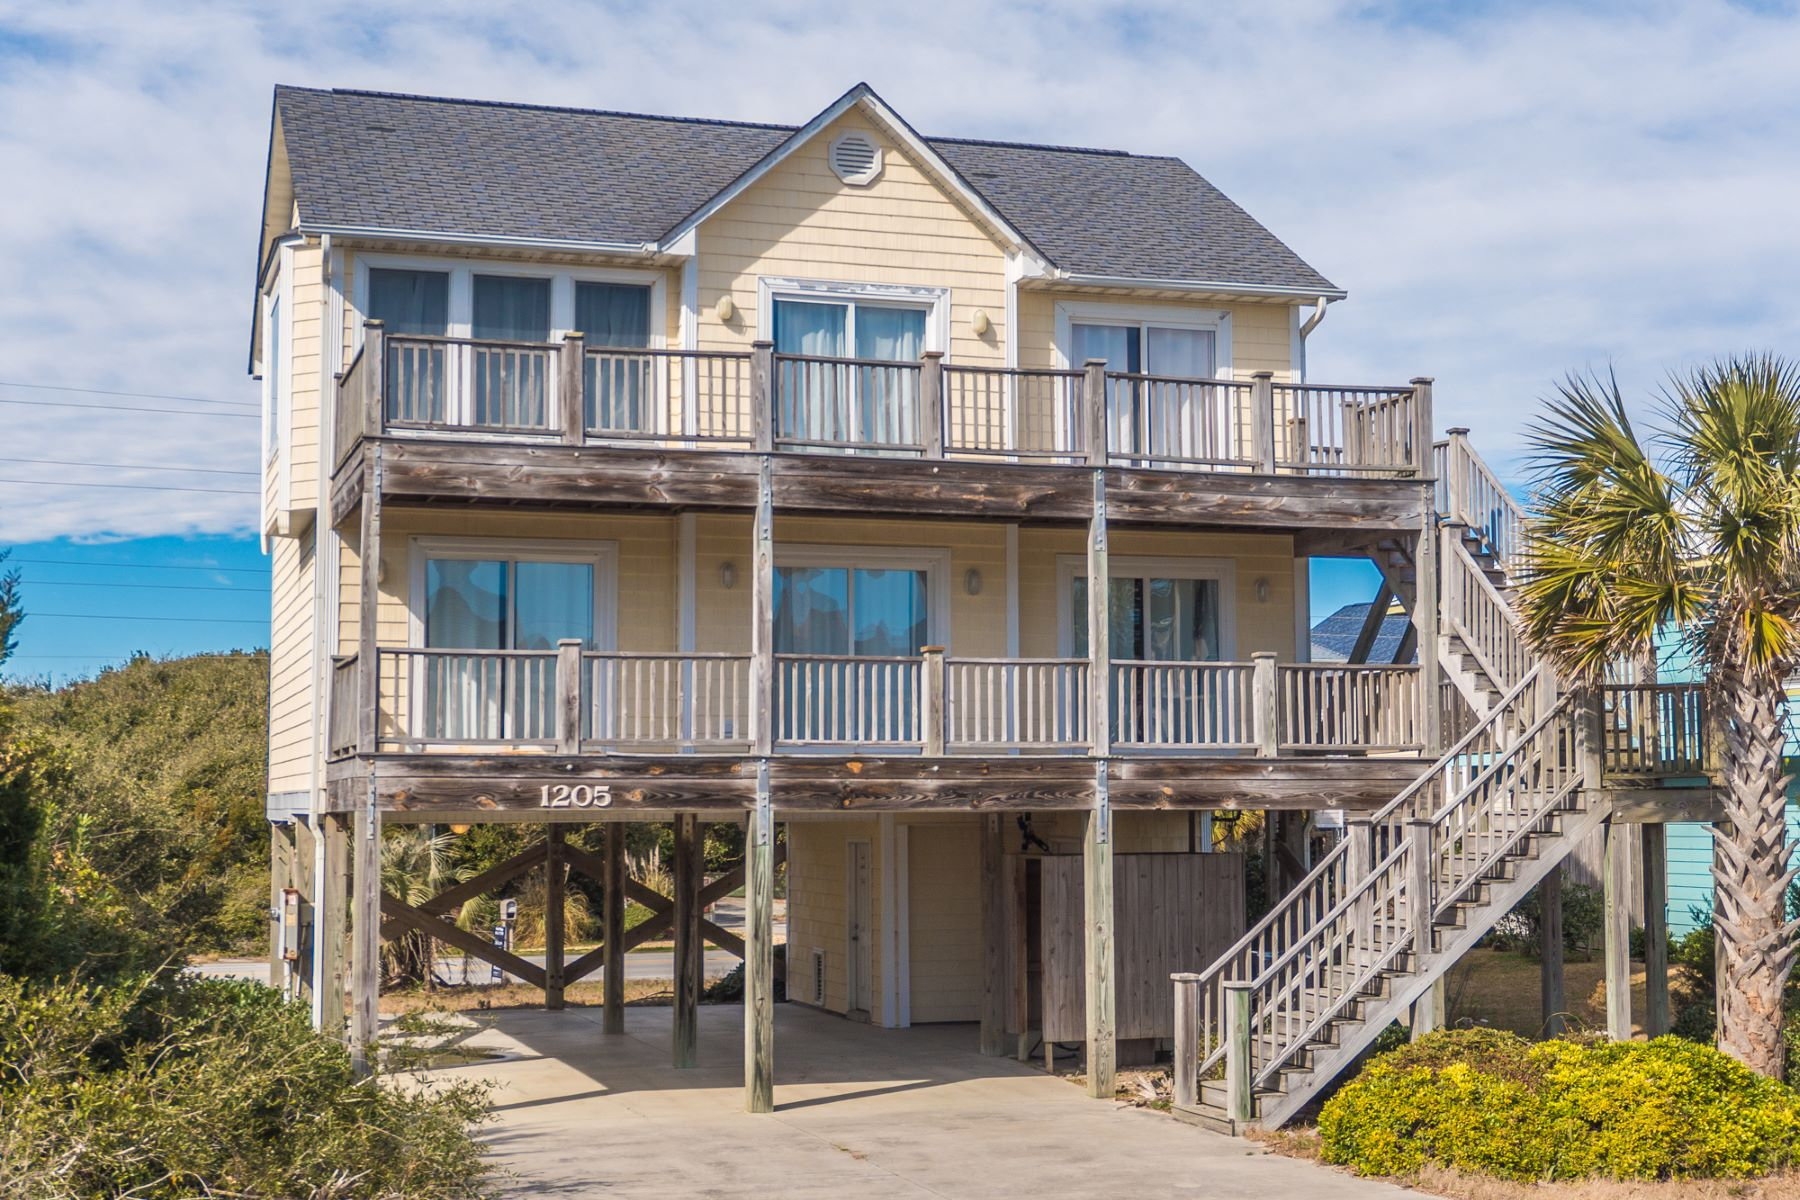 Moradia para Venda às Enjoy Harmonious Ocean Views and the Serenity of the Beach 1205 S Shore Drive Surf City, Carolina Do Norte, 28445 Estados Unidos